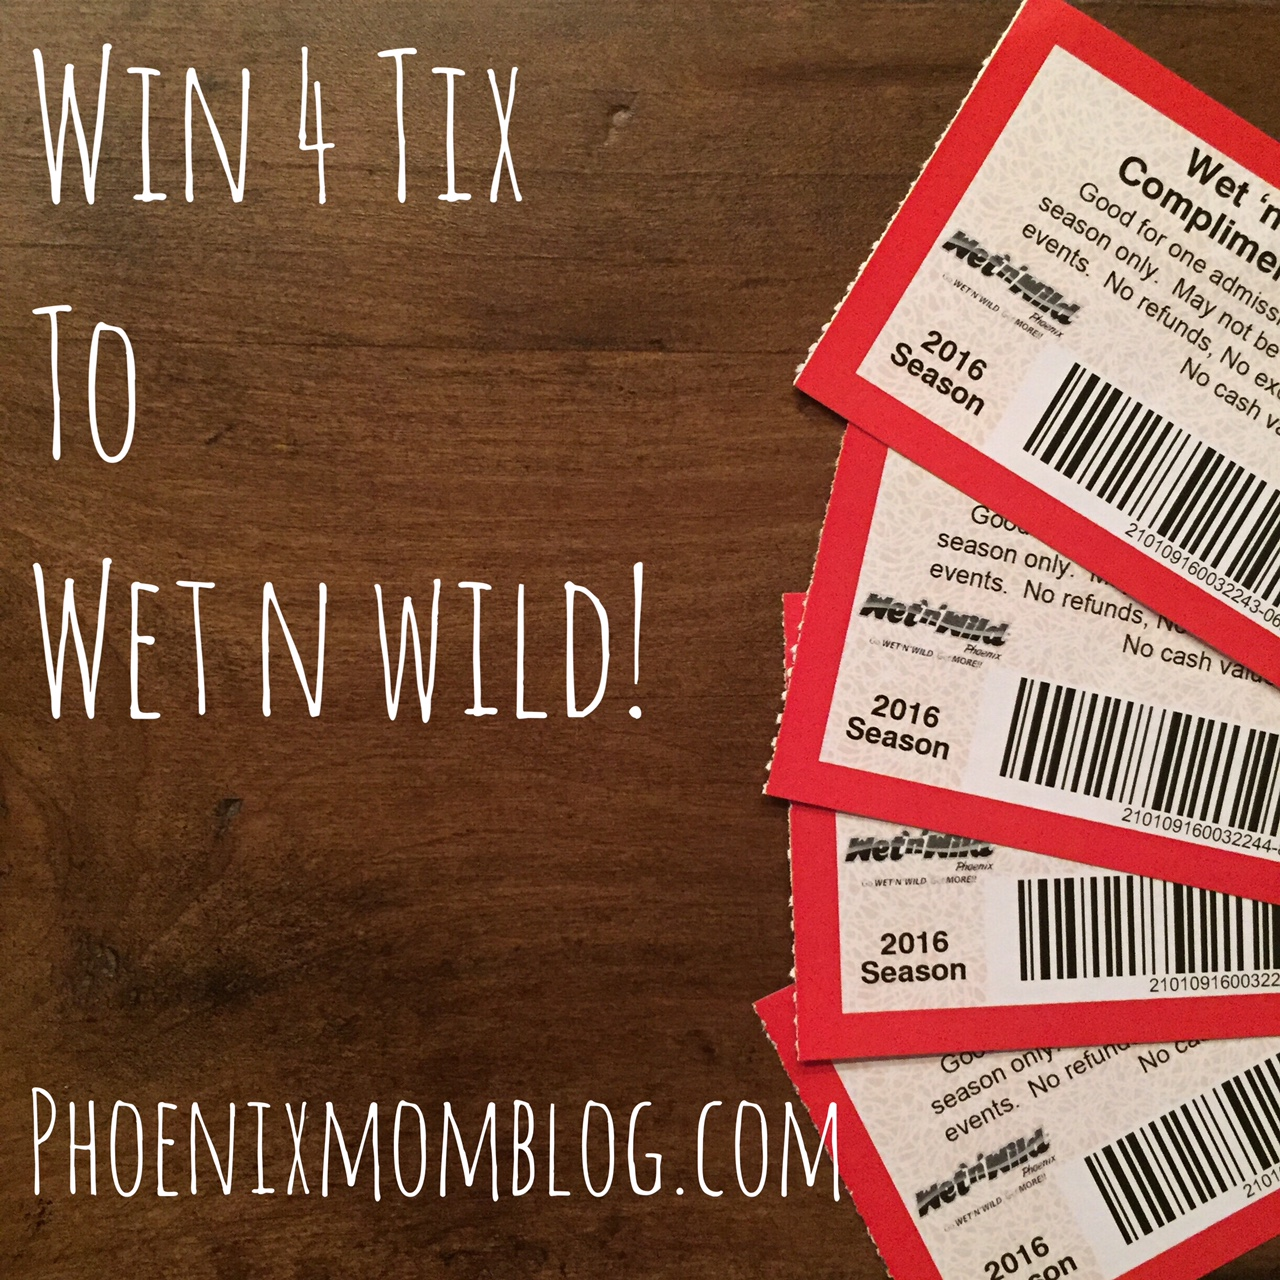 Win 4 Tickets To Wet 'N' Wild Phoenix!